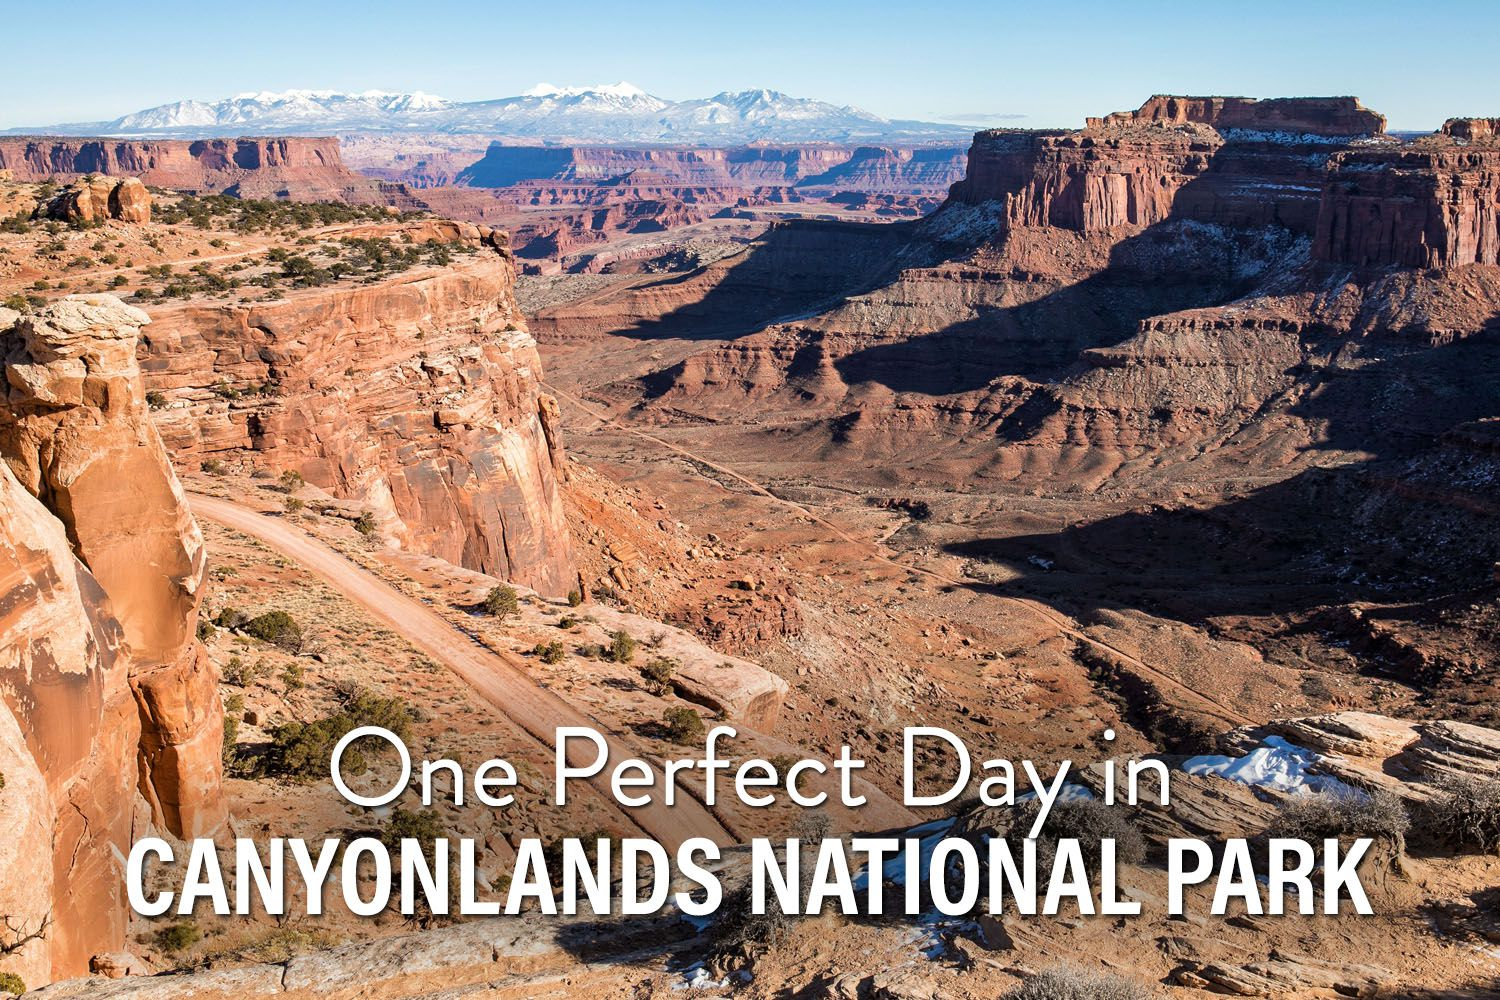 One Day in Canyonlands